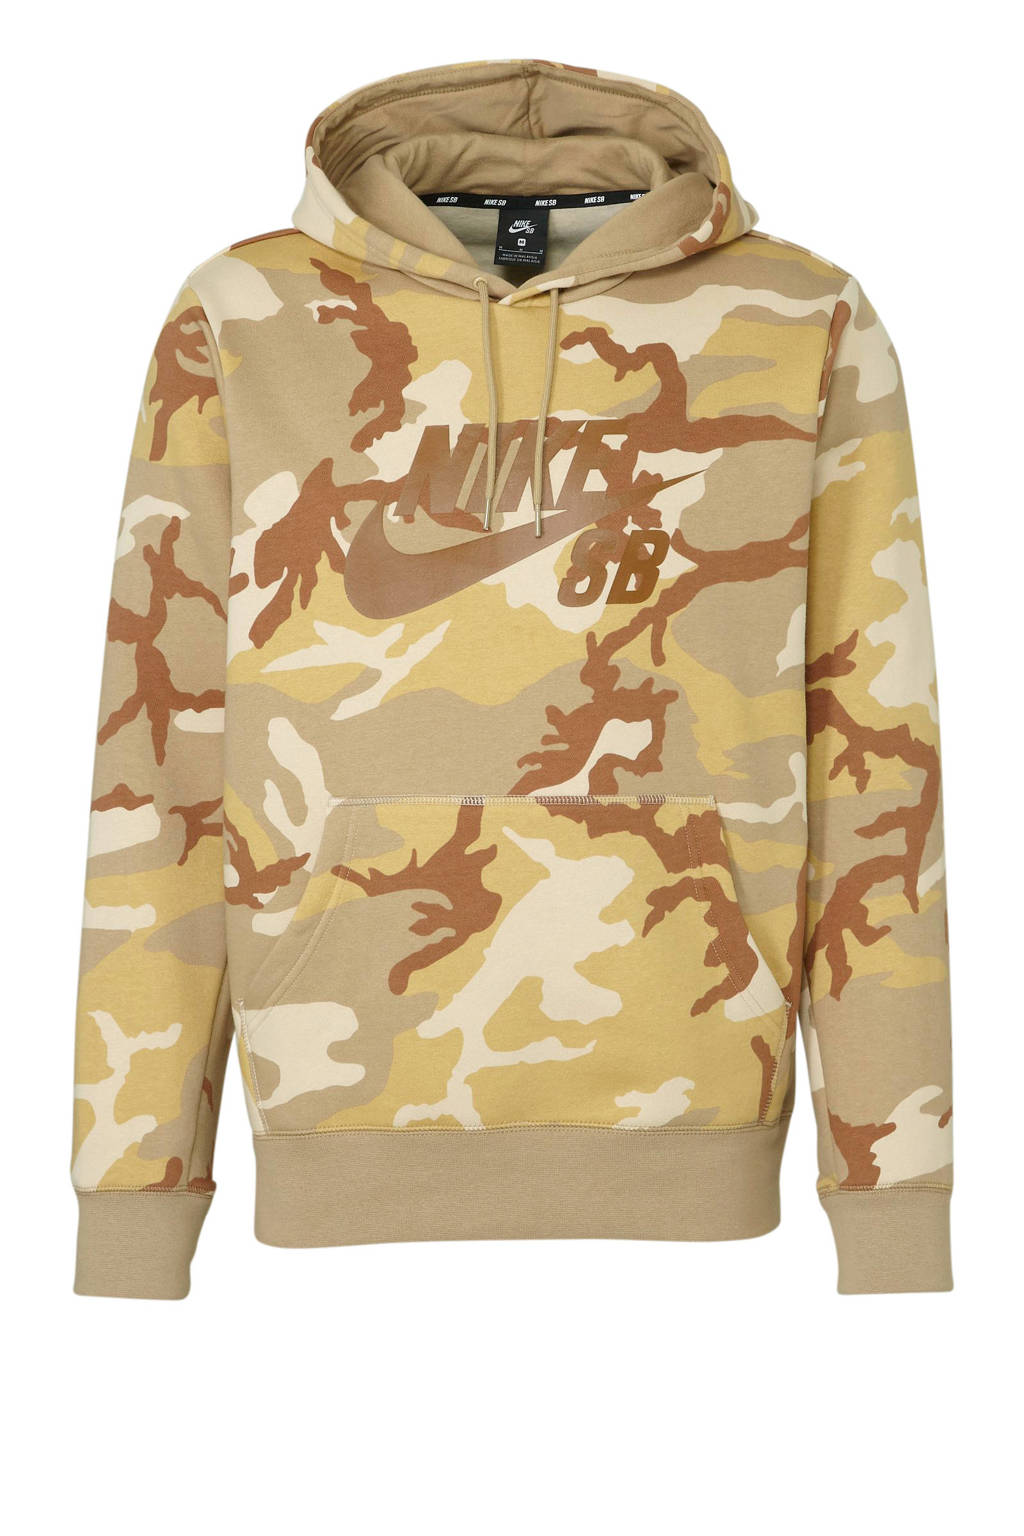 Nike   hoodie camouflage camel, Camel/groen camouflage